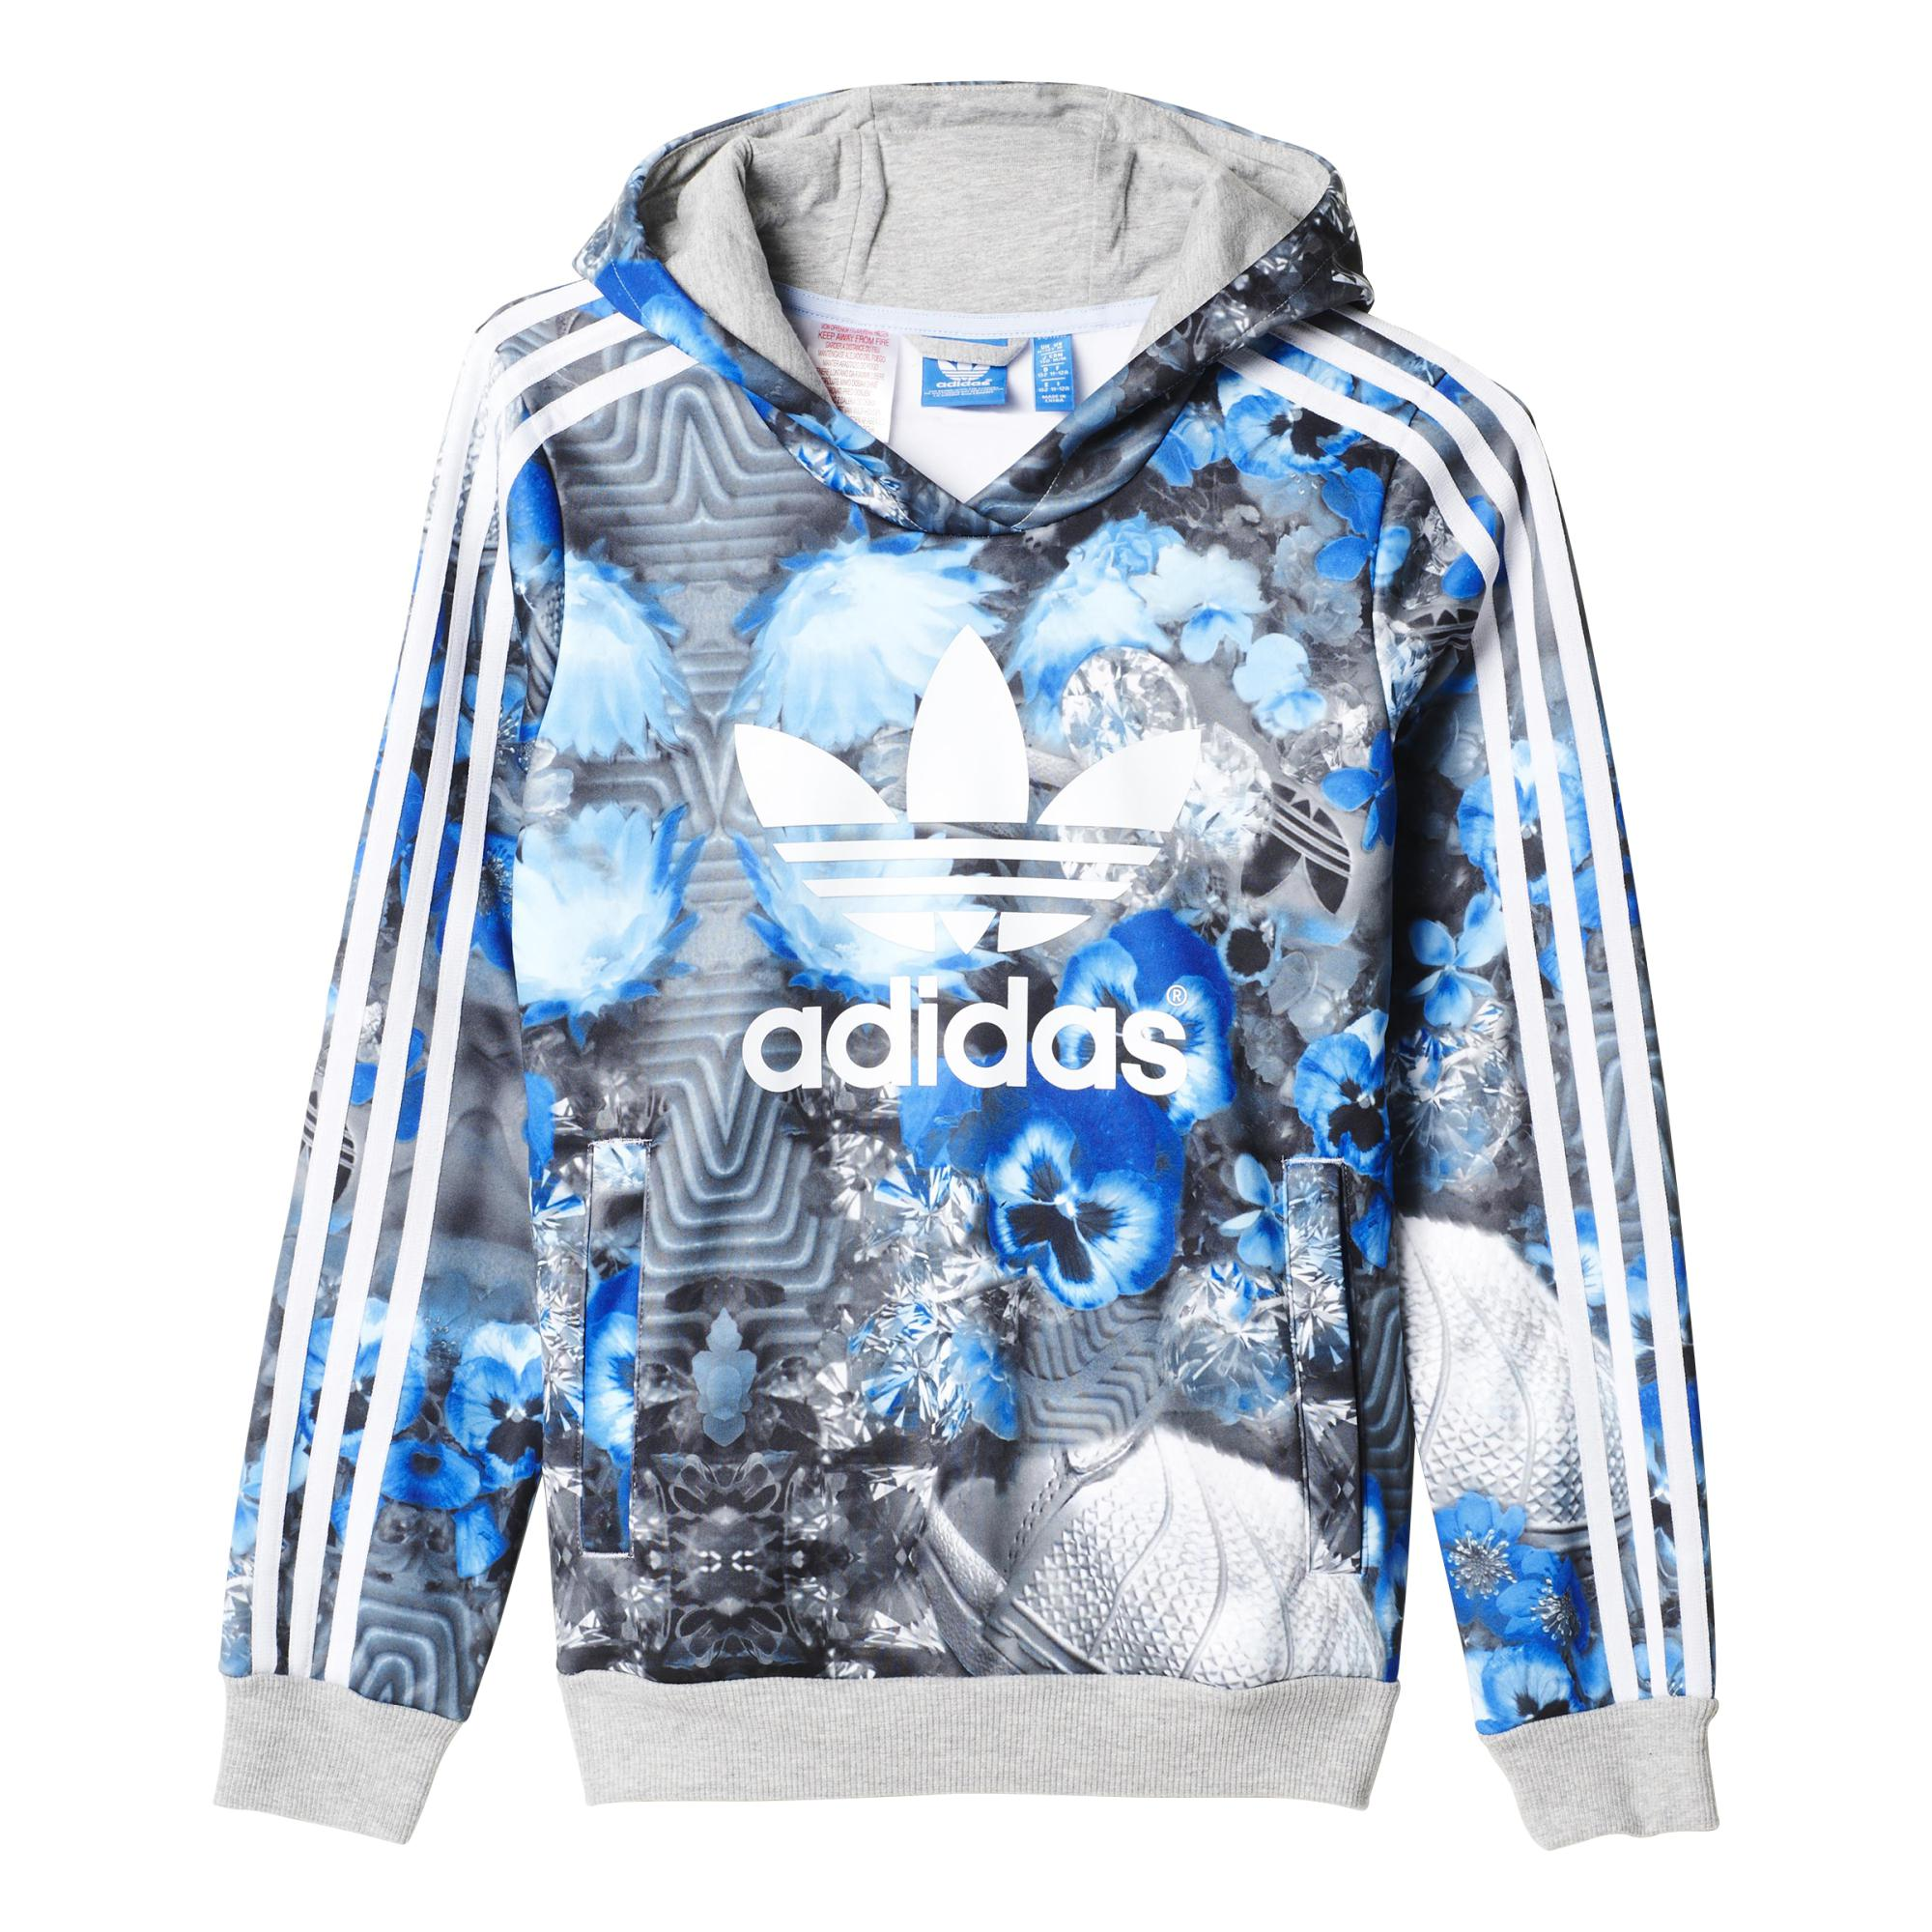 69b9d57c4fa2e5 Adidas Originals Junior Sudadera Superstar Jungle Trefoil Logo  (azul/blanco/gris)